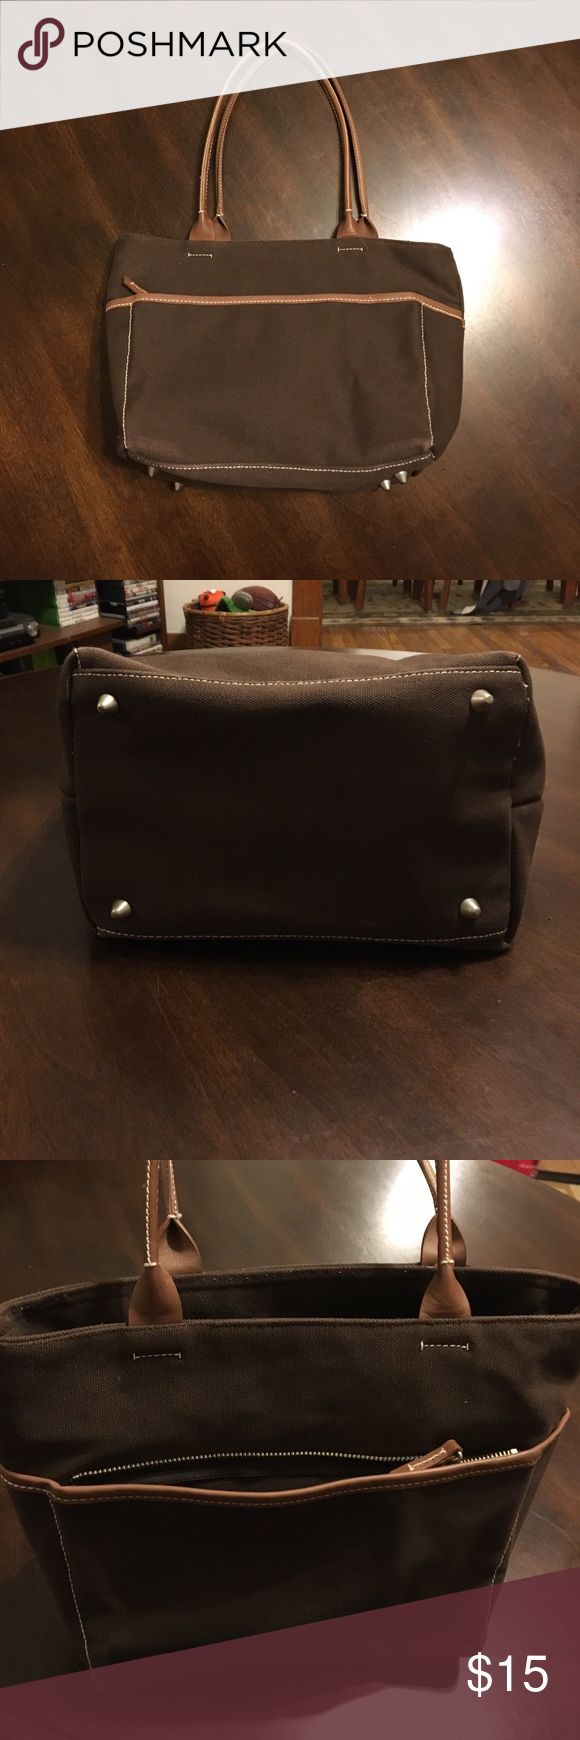 Chocolate Brown Gap Purse w/Light Brown Trim Chocolate Brown Gap Purse w/Light Brown Trim. Zipper front pocket, and open back pocket. One Zipper pocket inside, and zips closed. Key holder as pictured. GAP Bags Shoulder Bags